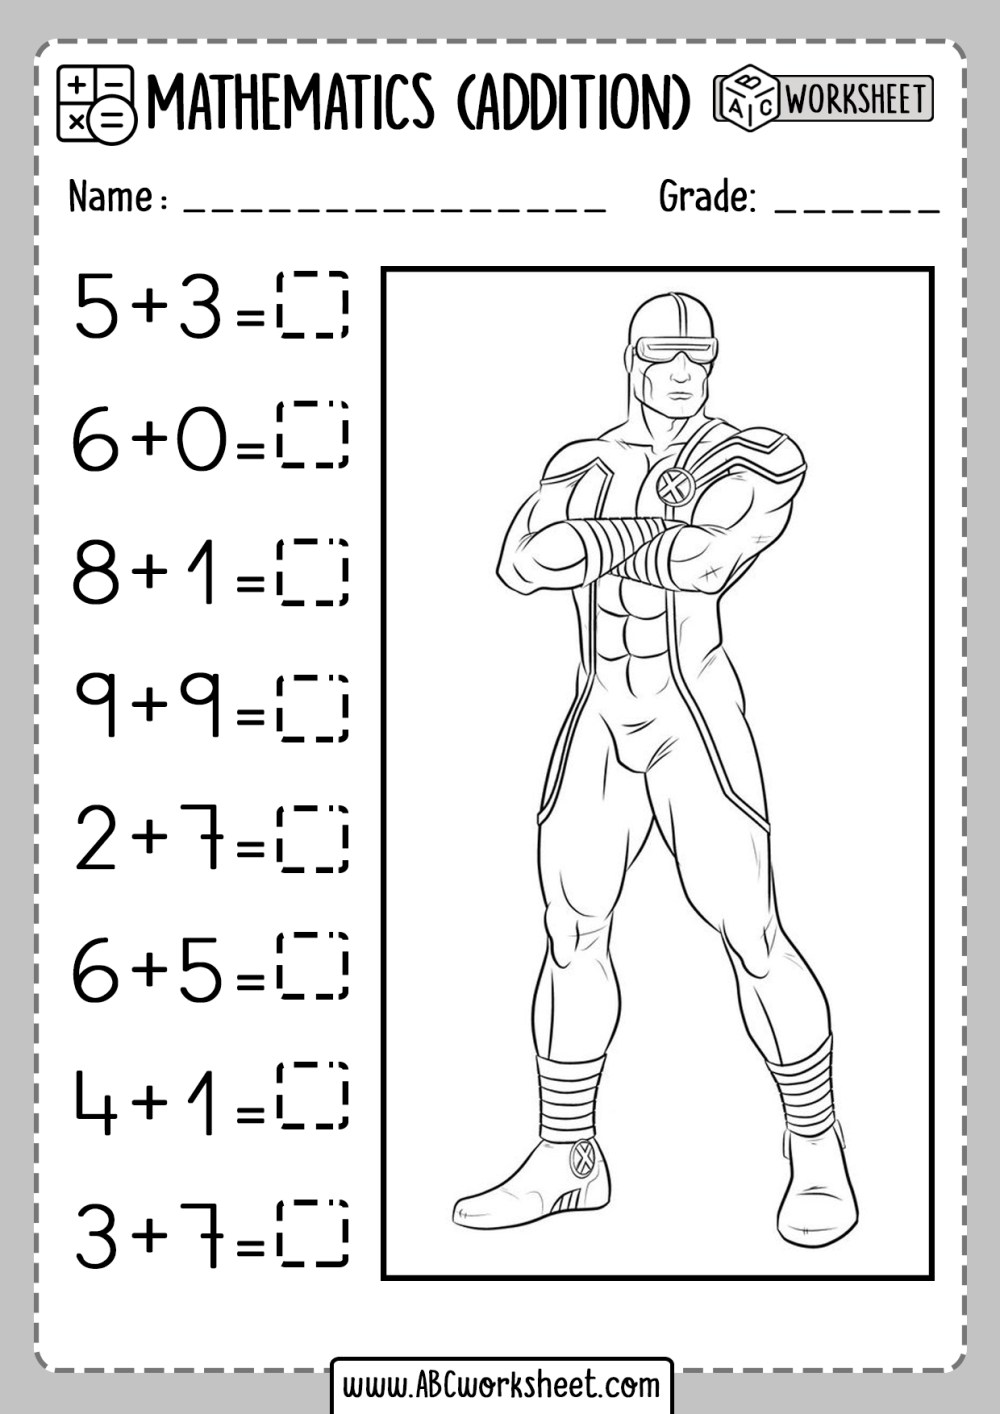 medium resolution of Addition Partial Sums Worksheet   Printable Worksheets and Activities for  Teachers